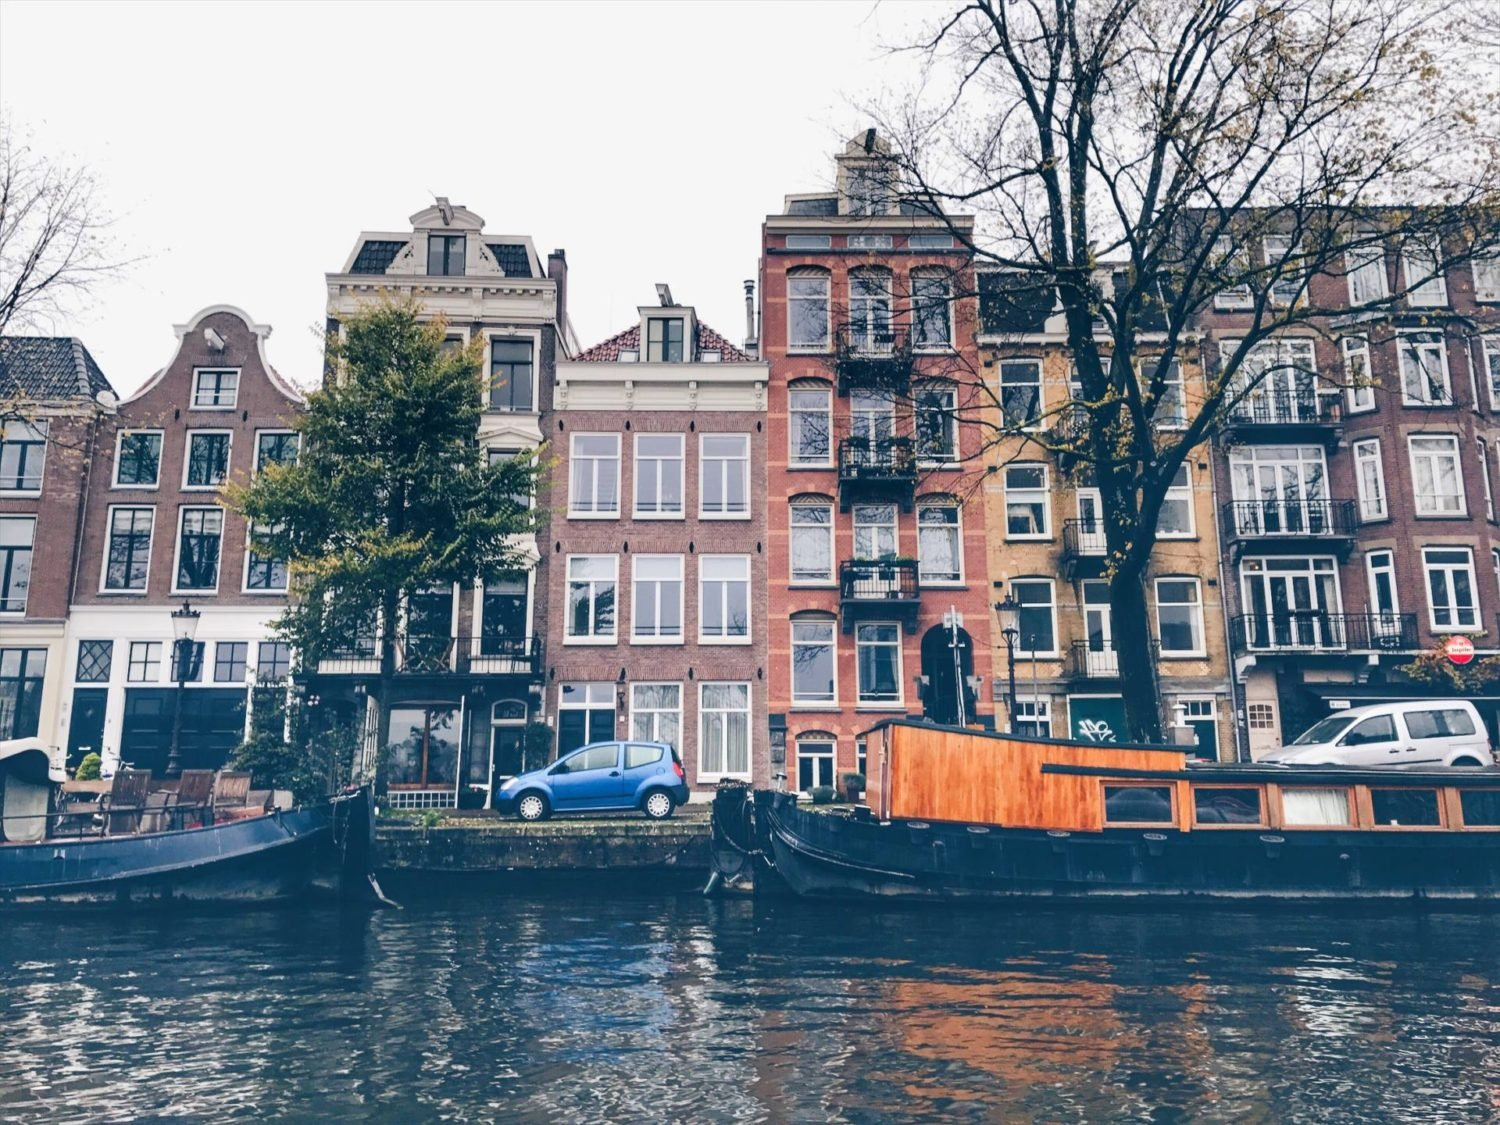 Getting from England to Amsterdam by ferry with DFDS: a review